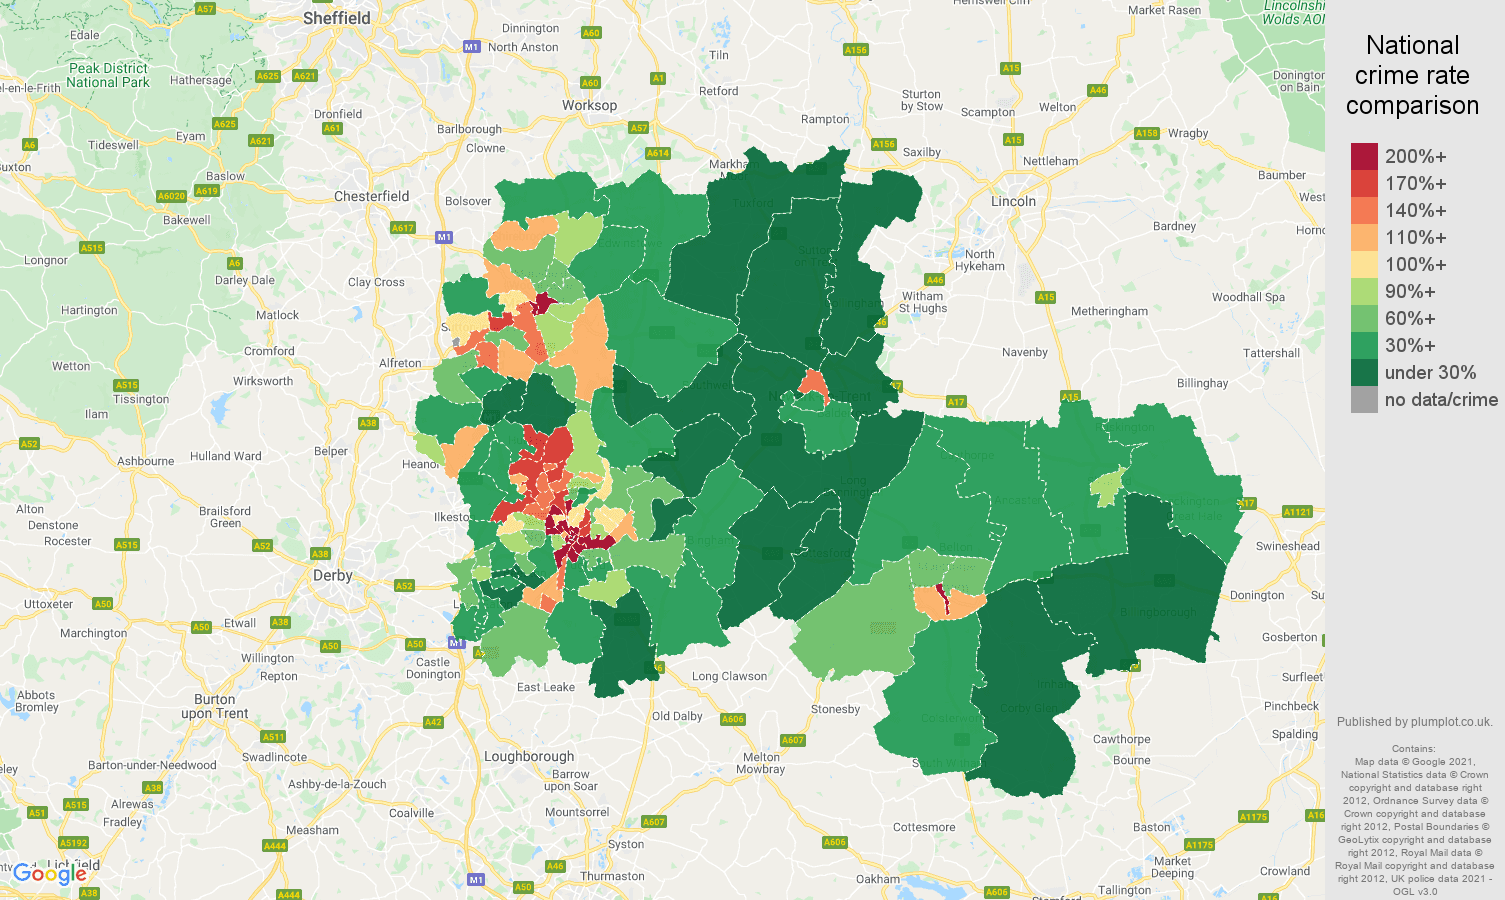 Nottingham drugs crime rate comparison map